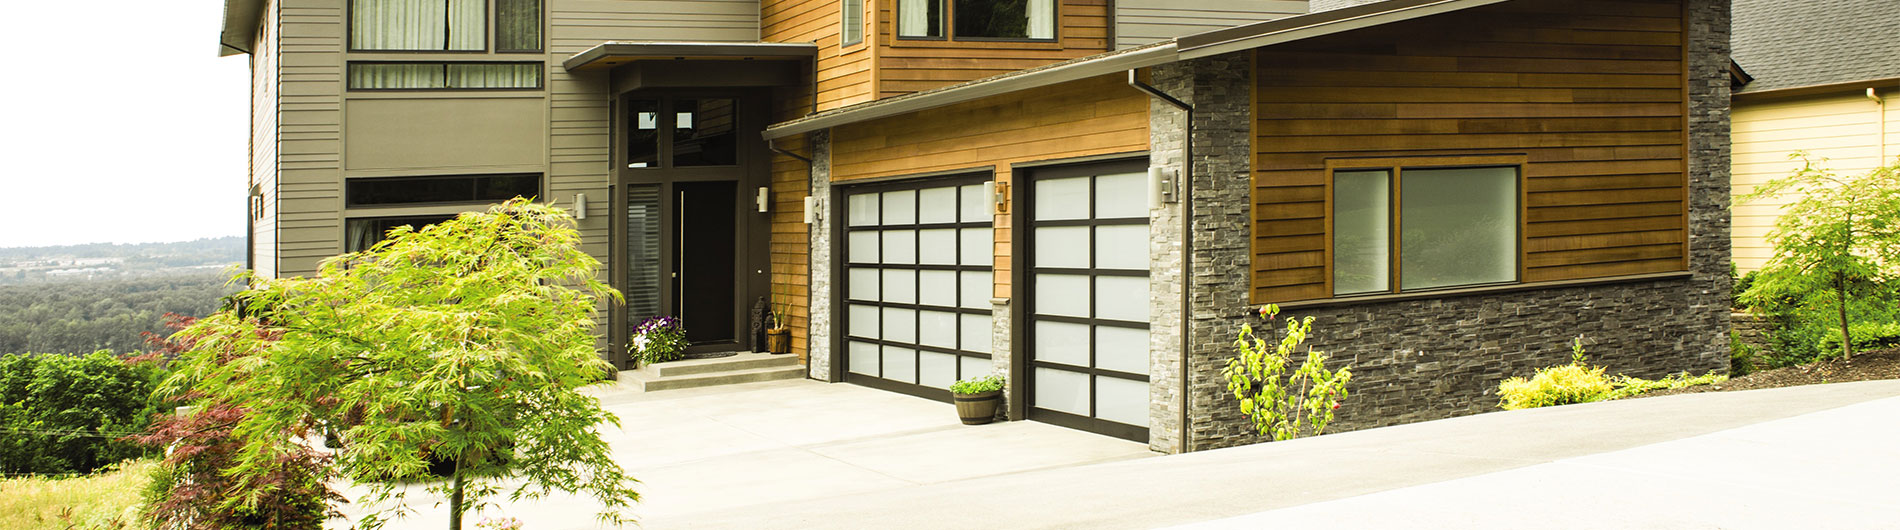 Aluminum Glass Garage Doors 8800 From Precision Door & Aluminum Glass Garage Doors 8800 From Precision Door - Precision ...